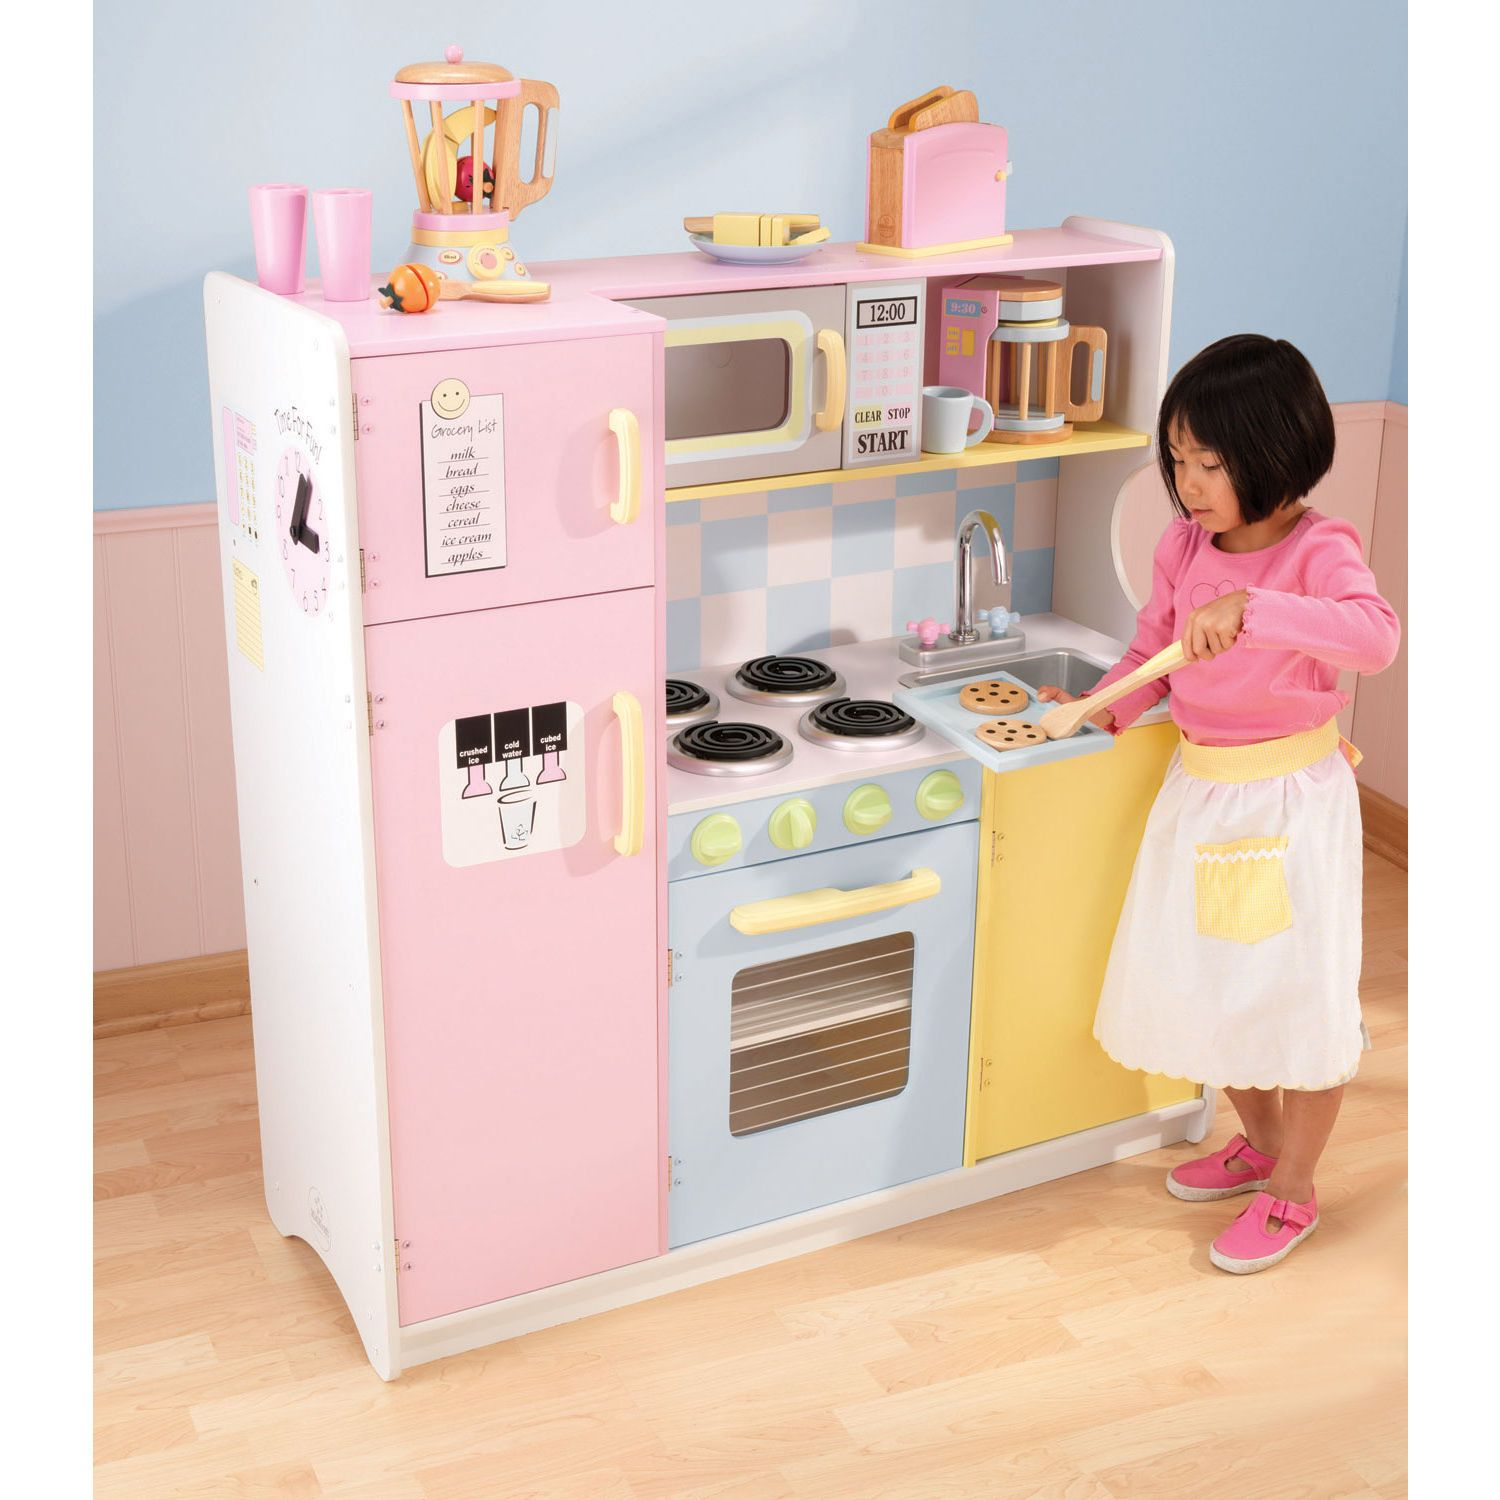 Kidkraft Küche Pastell 169 Pastel Play Kitchen Playroom Pinterest Kitchen